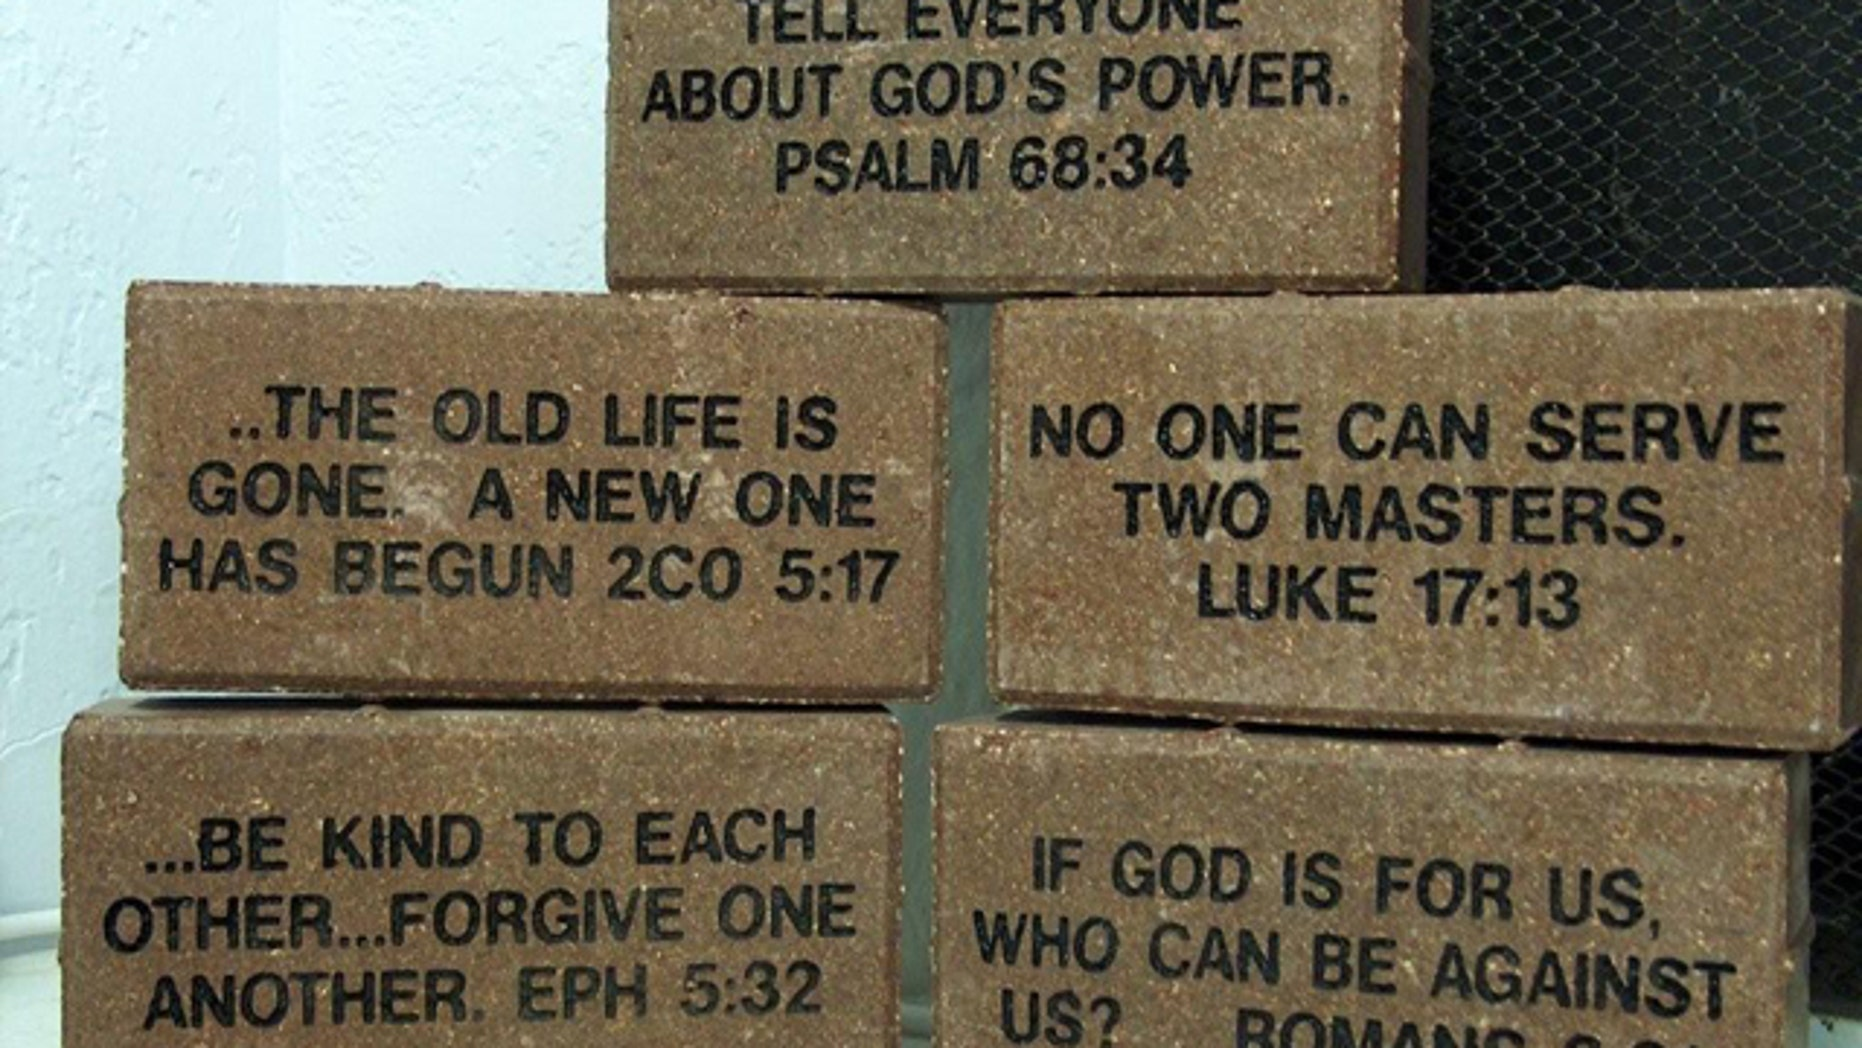 The bricks, seen above, were inscribed with Bible verses to be installed at California's Palm Desert High School. District officials have since decided to cancel the fundraiser and refund money of every community group or individual who purchased a memorial brick, according to a court filing last week. (ADF.org)